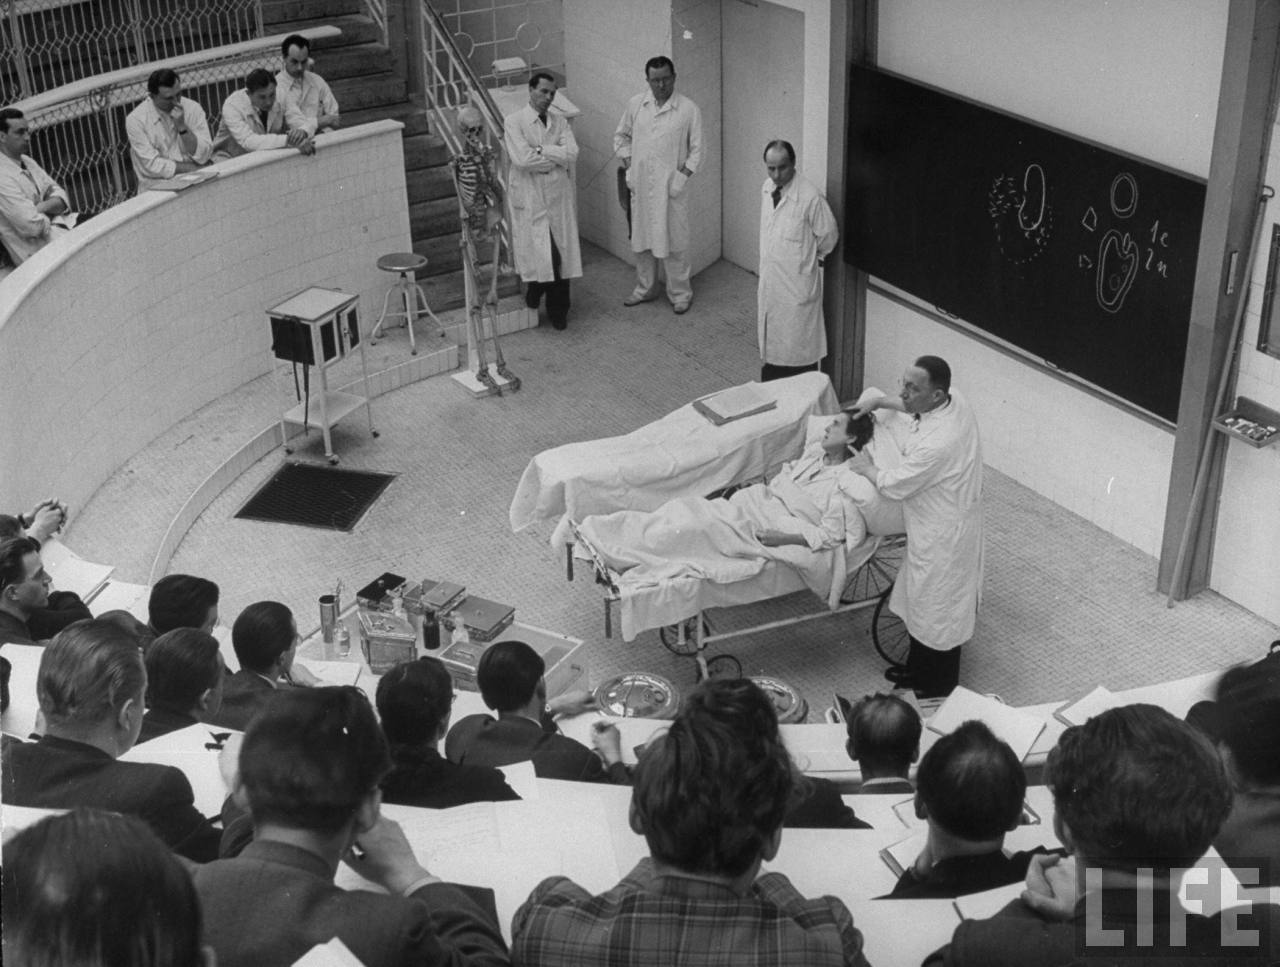 Brain surgeon Arnold Jirasek describing technique of operating on woman with a severely abscessed jaw to medical students from Charles University in amphitheater of his Clinic of Surgery.